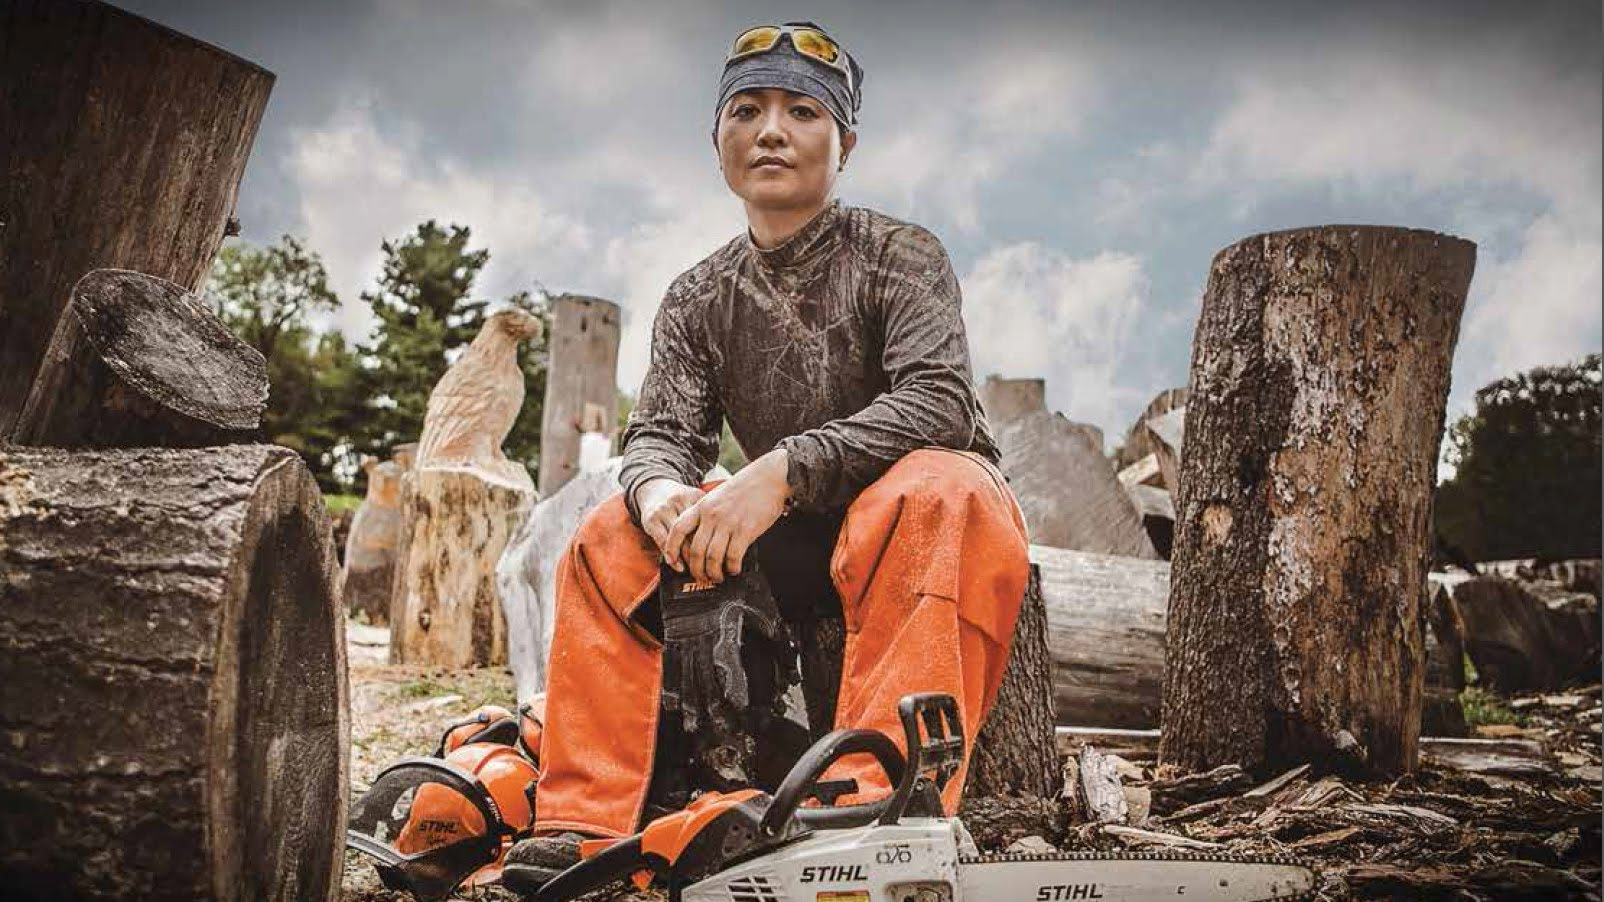 Chainsaw sculptor Aya Blaine will again perform at the Olde Sanborn Days Arts and Crafts Show.